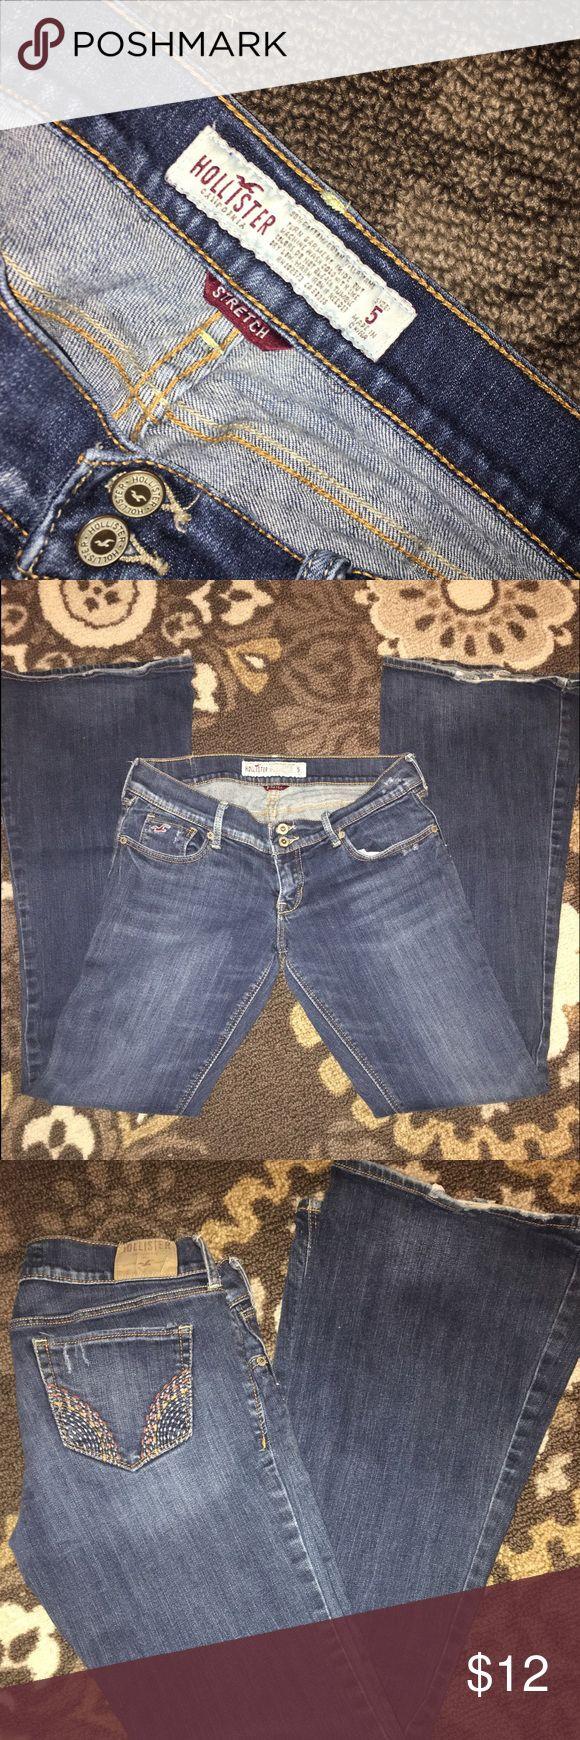 Super flare Hollister jeans Great worn condition Hollister super flare jeans. Size 5. Smoke free/pet free home Hollister Jeans Flare & Wide Leg